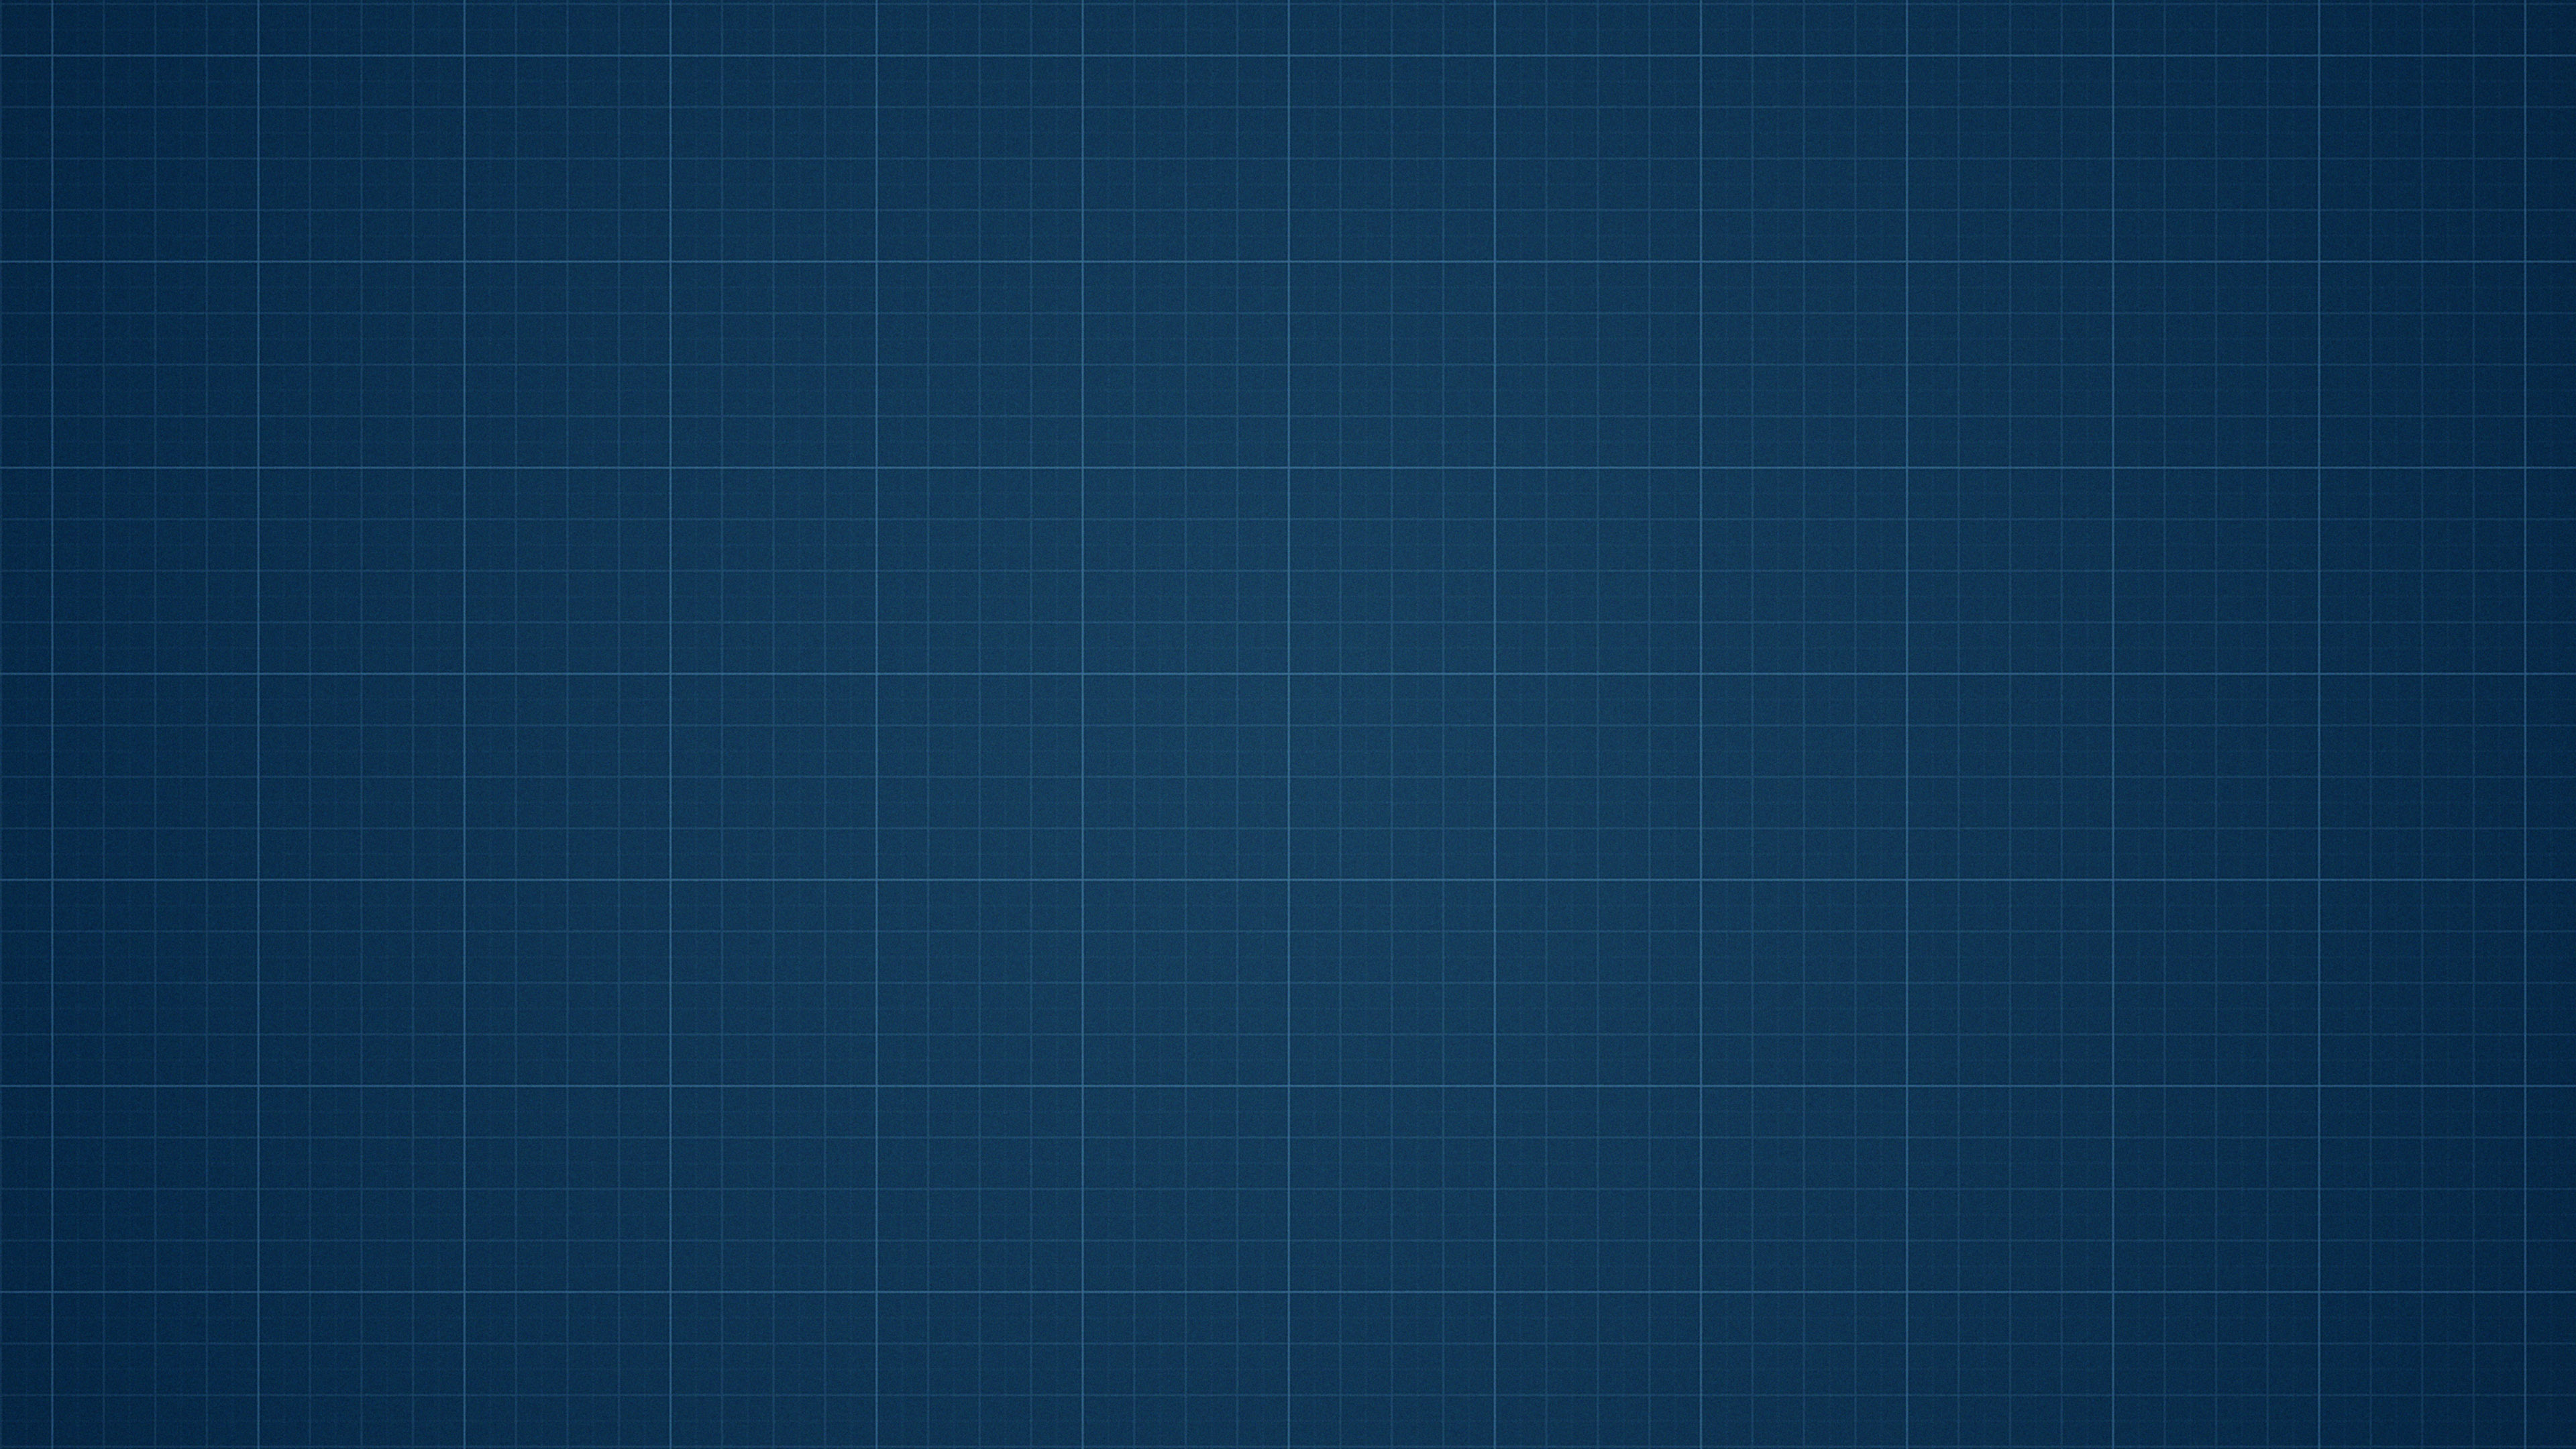 Gold Wallpaper Iphone 4 Vc51 Blueprint Technical Pattern Papers Co